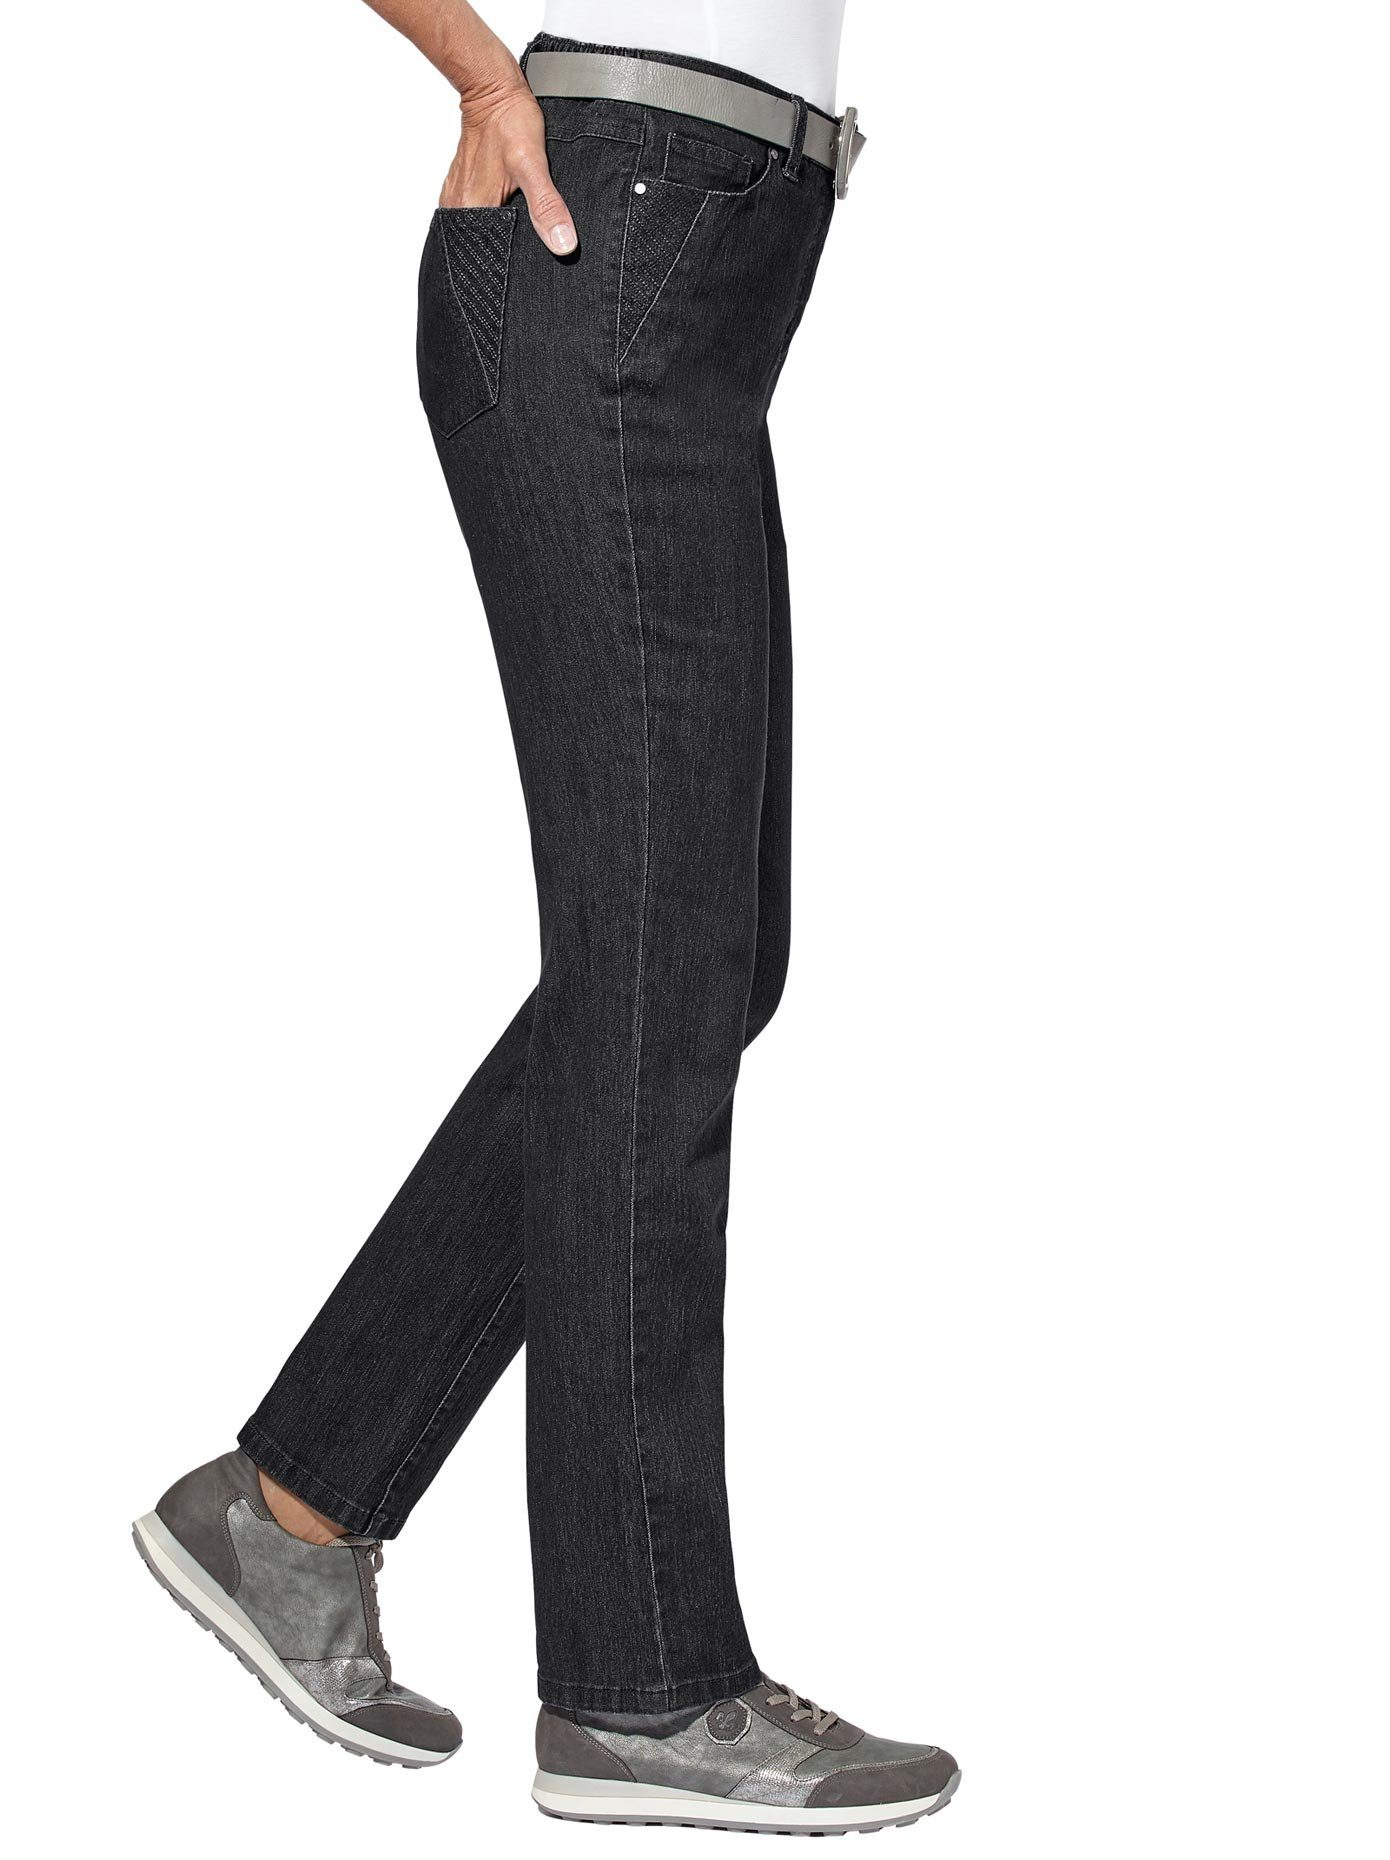 Casual Looks 5-Pocket-Jeans, bequeme Stretch-Qualität xyJjDo